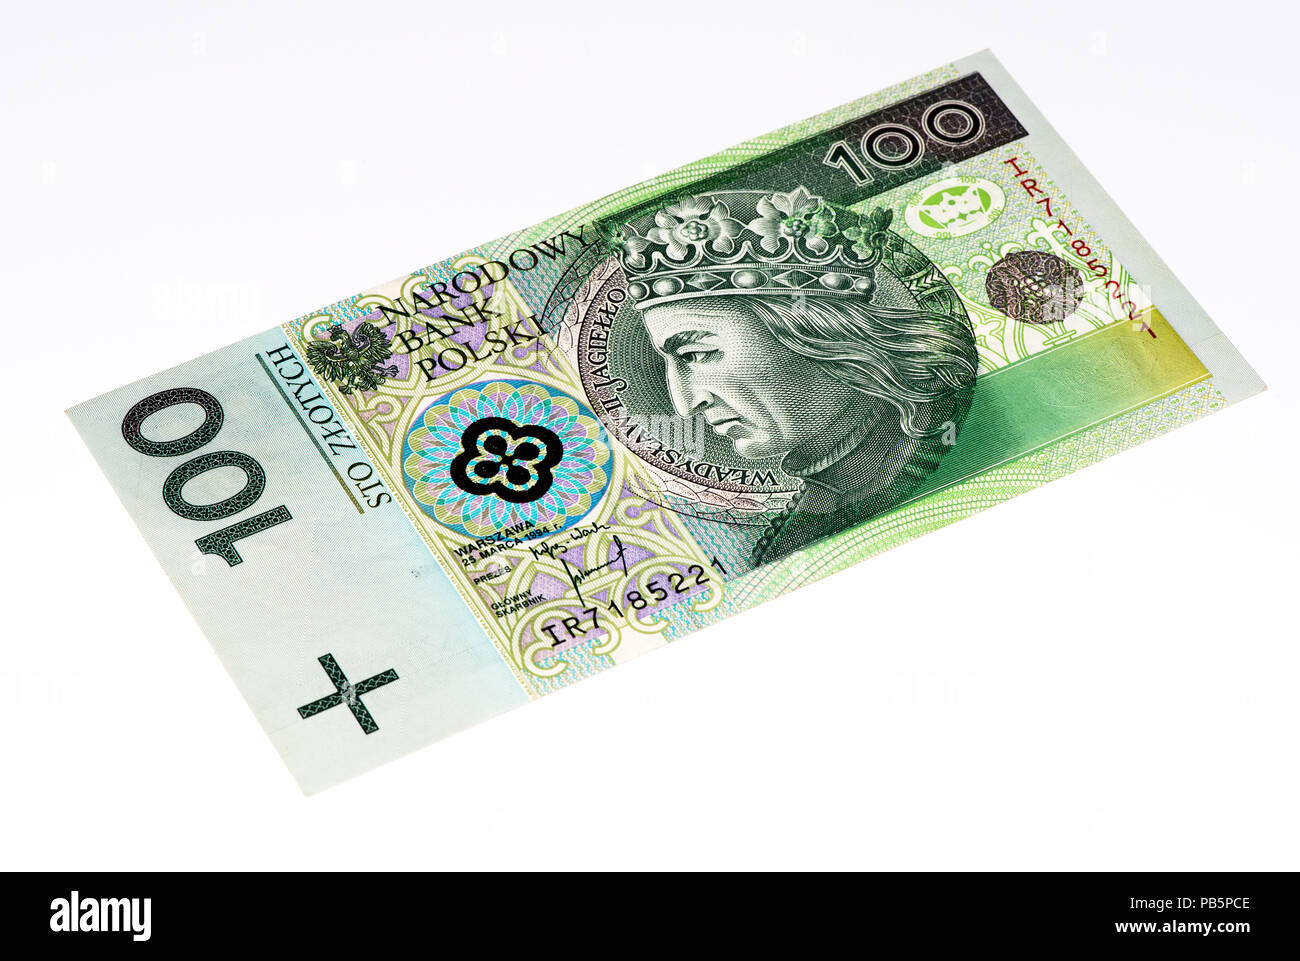 100 Polish Zloty Bank Note Zloty Is The National Currency Of Poland